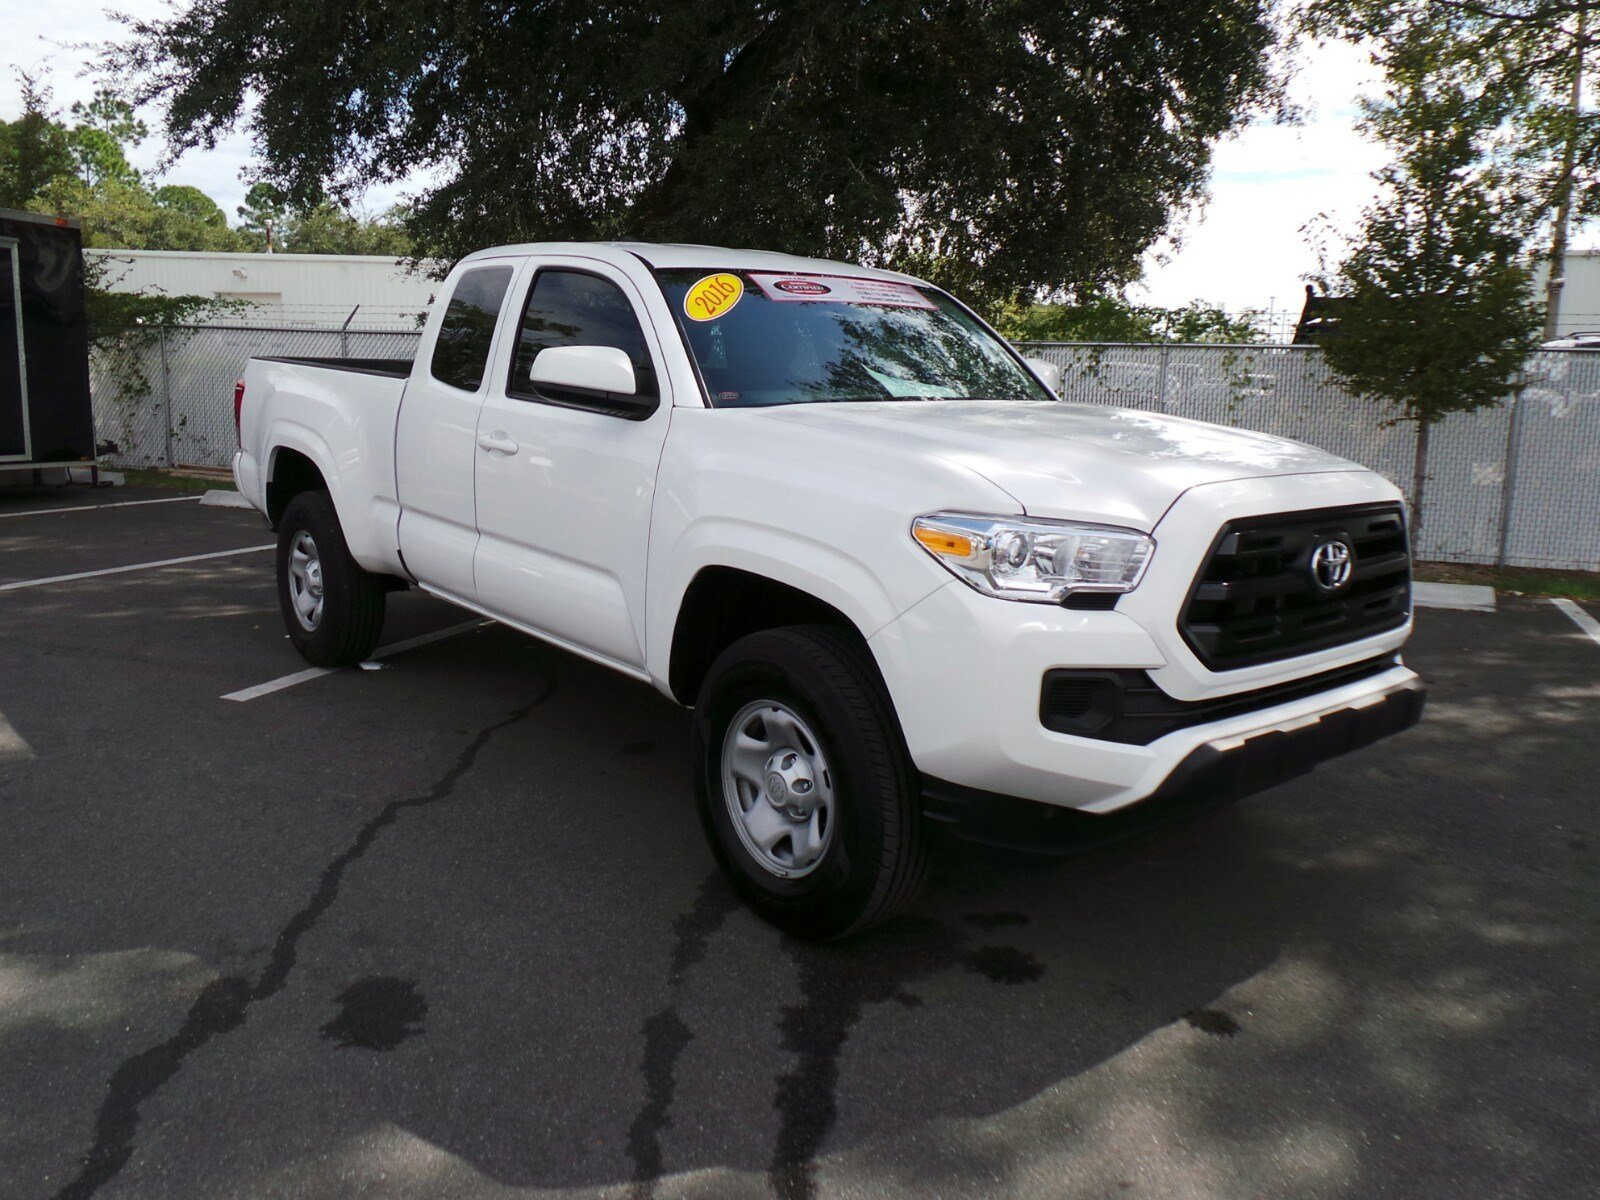 certified pre owned 2016 toyota tacoma sr access cab in jacksonville p8035 arlington toyota. Black Bedroom Furniture Sets. Home Design Ideas